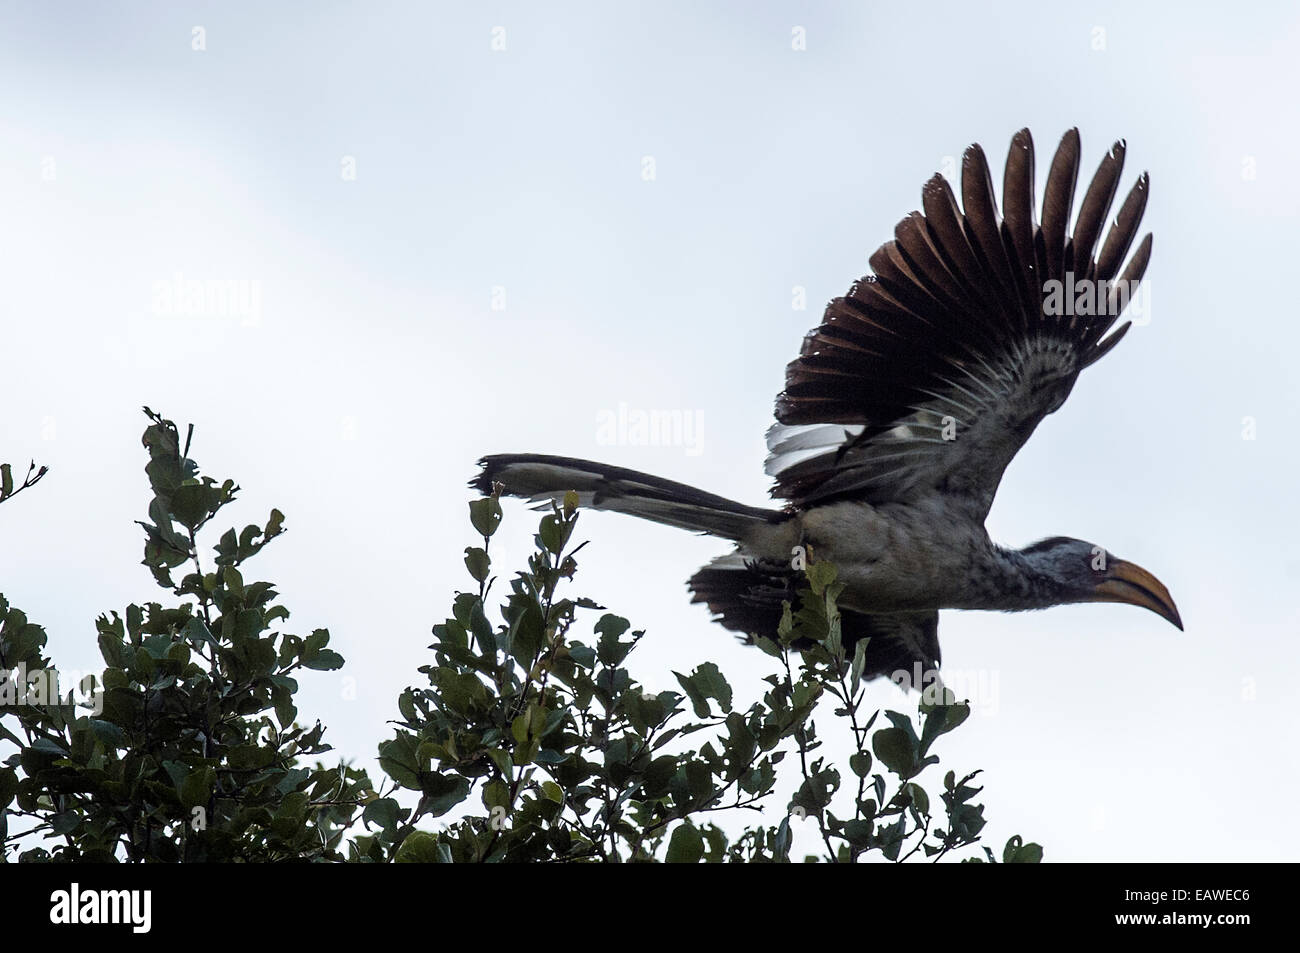 A Southern Yellow-billed Hornbill launches from the canopy of a tree. - Stock Image